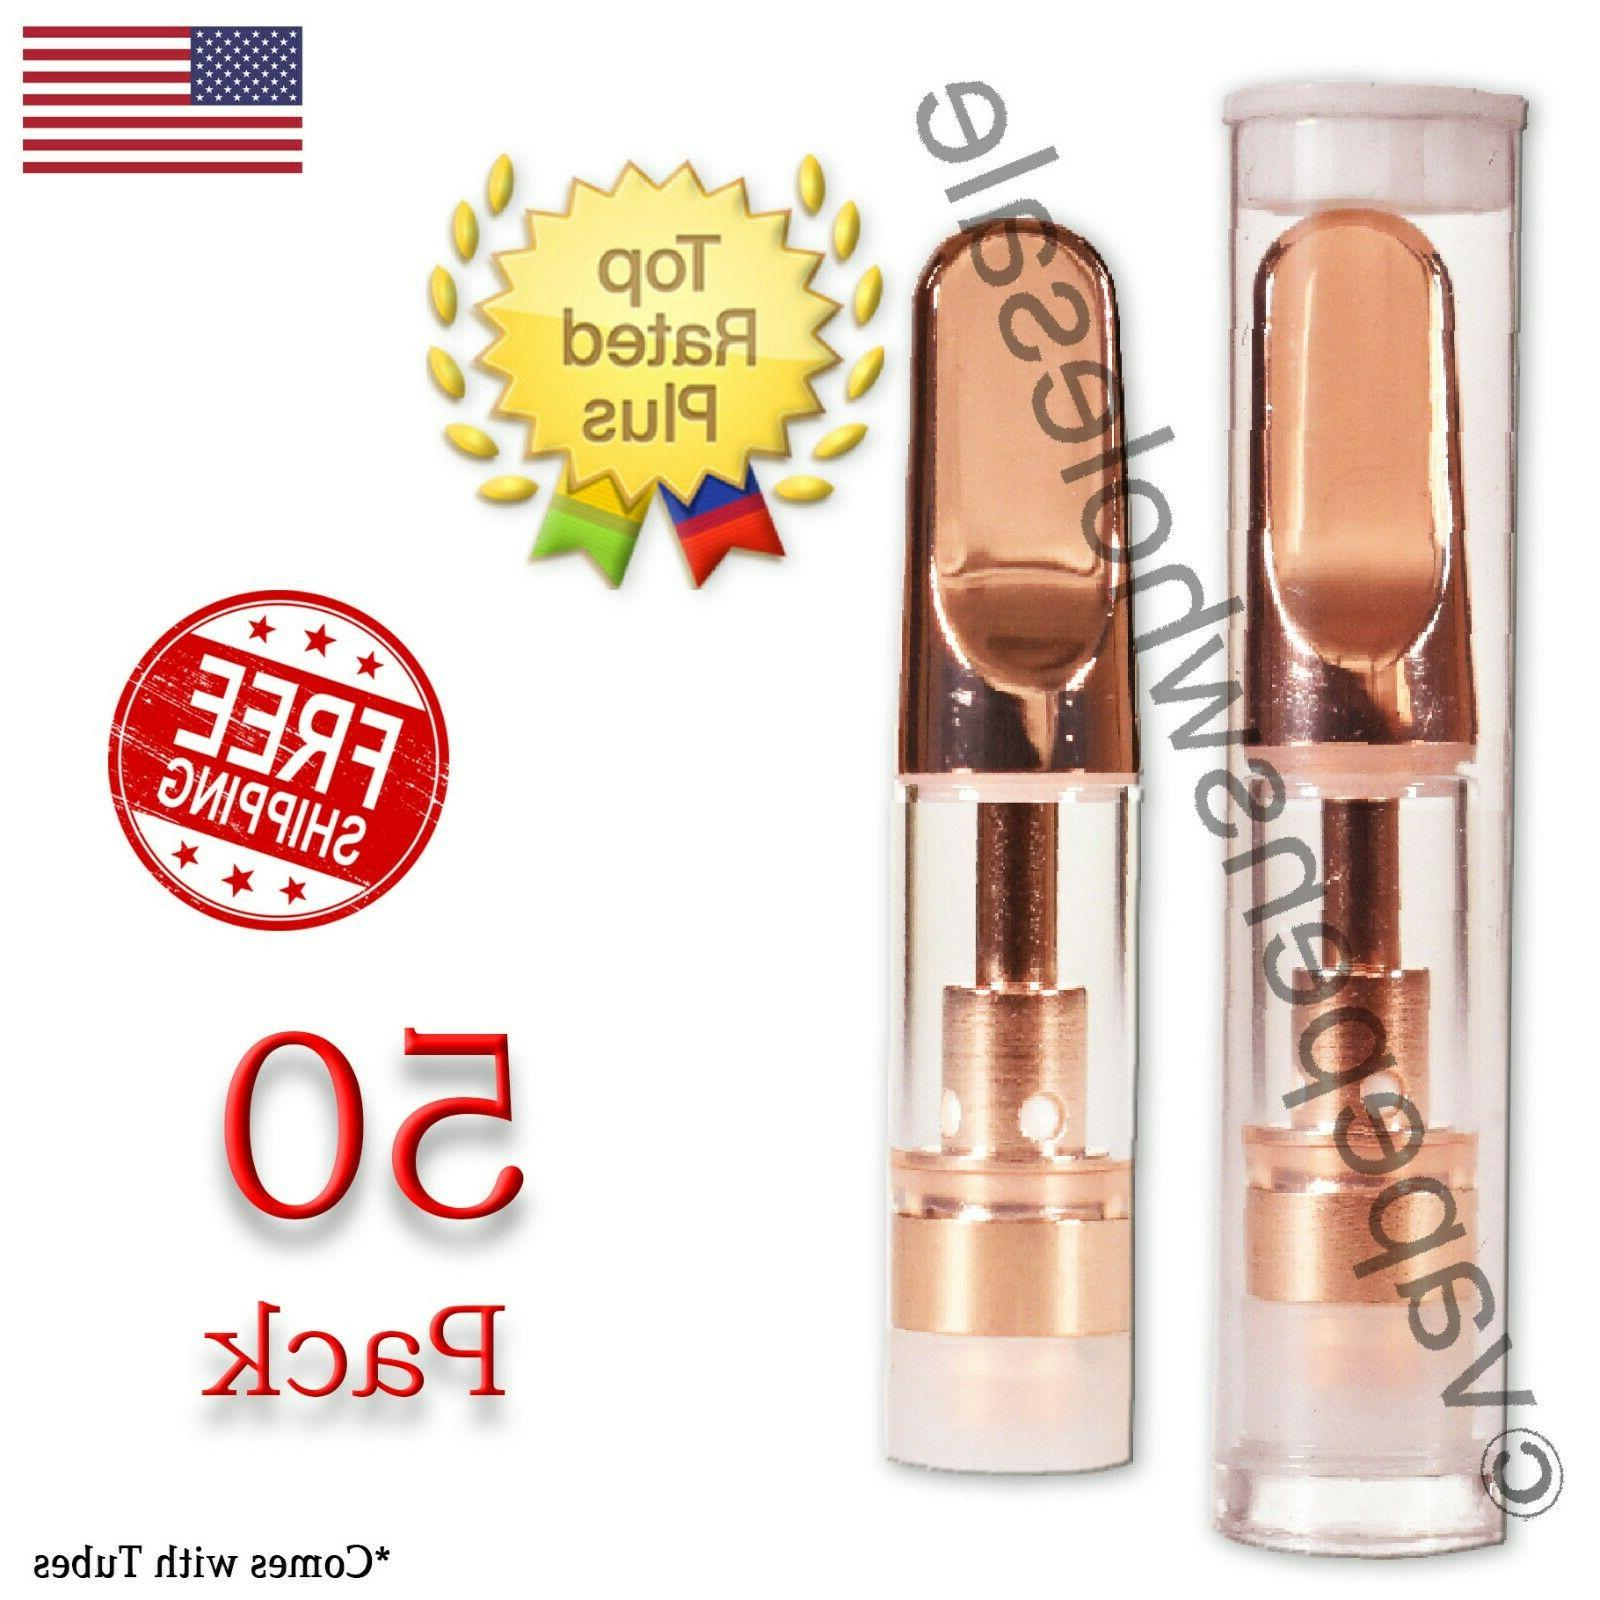 50-Pack CCELL Cartridge Tank 1mL USA